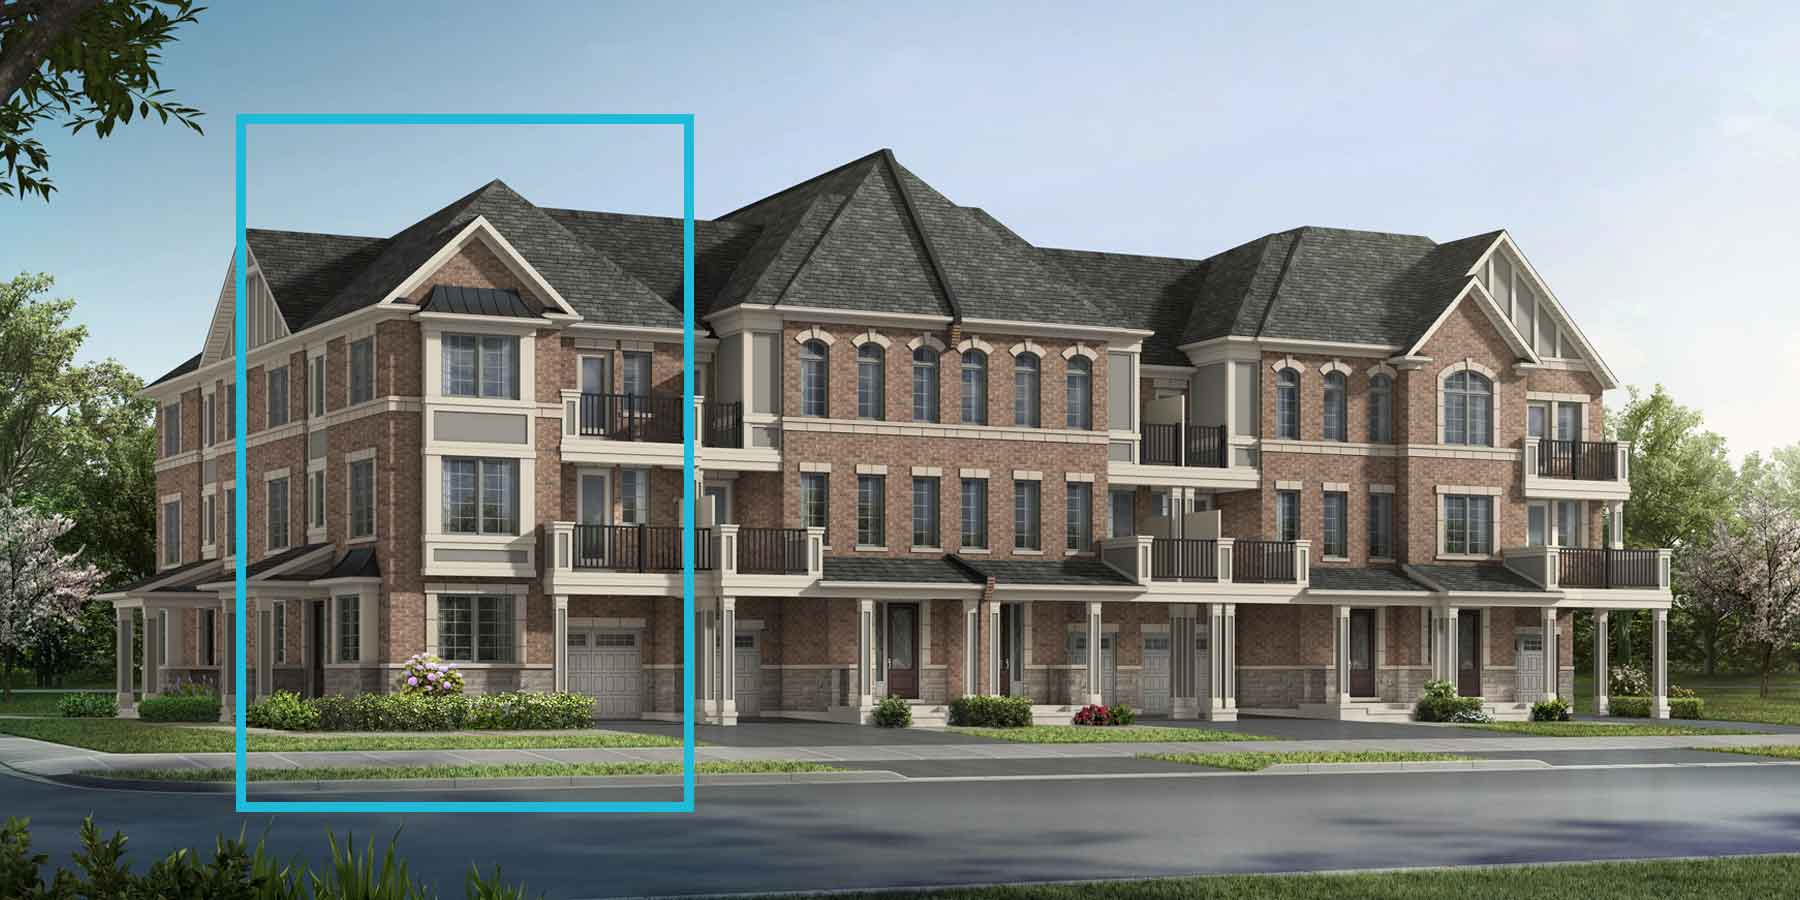 Medallion Corner Plan TownHomes at Springwater in Markham Ontario by Mattamy Homes